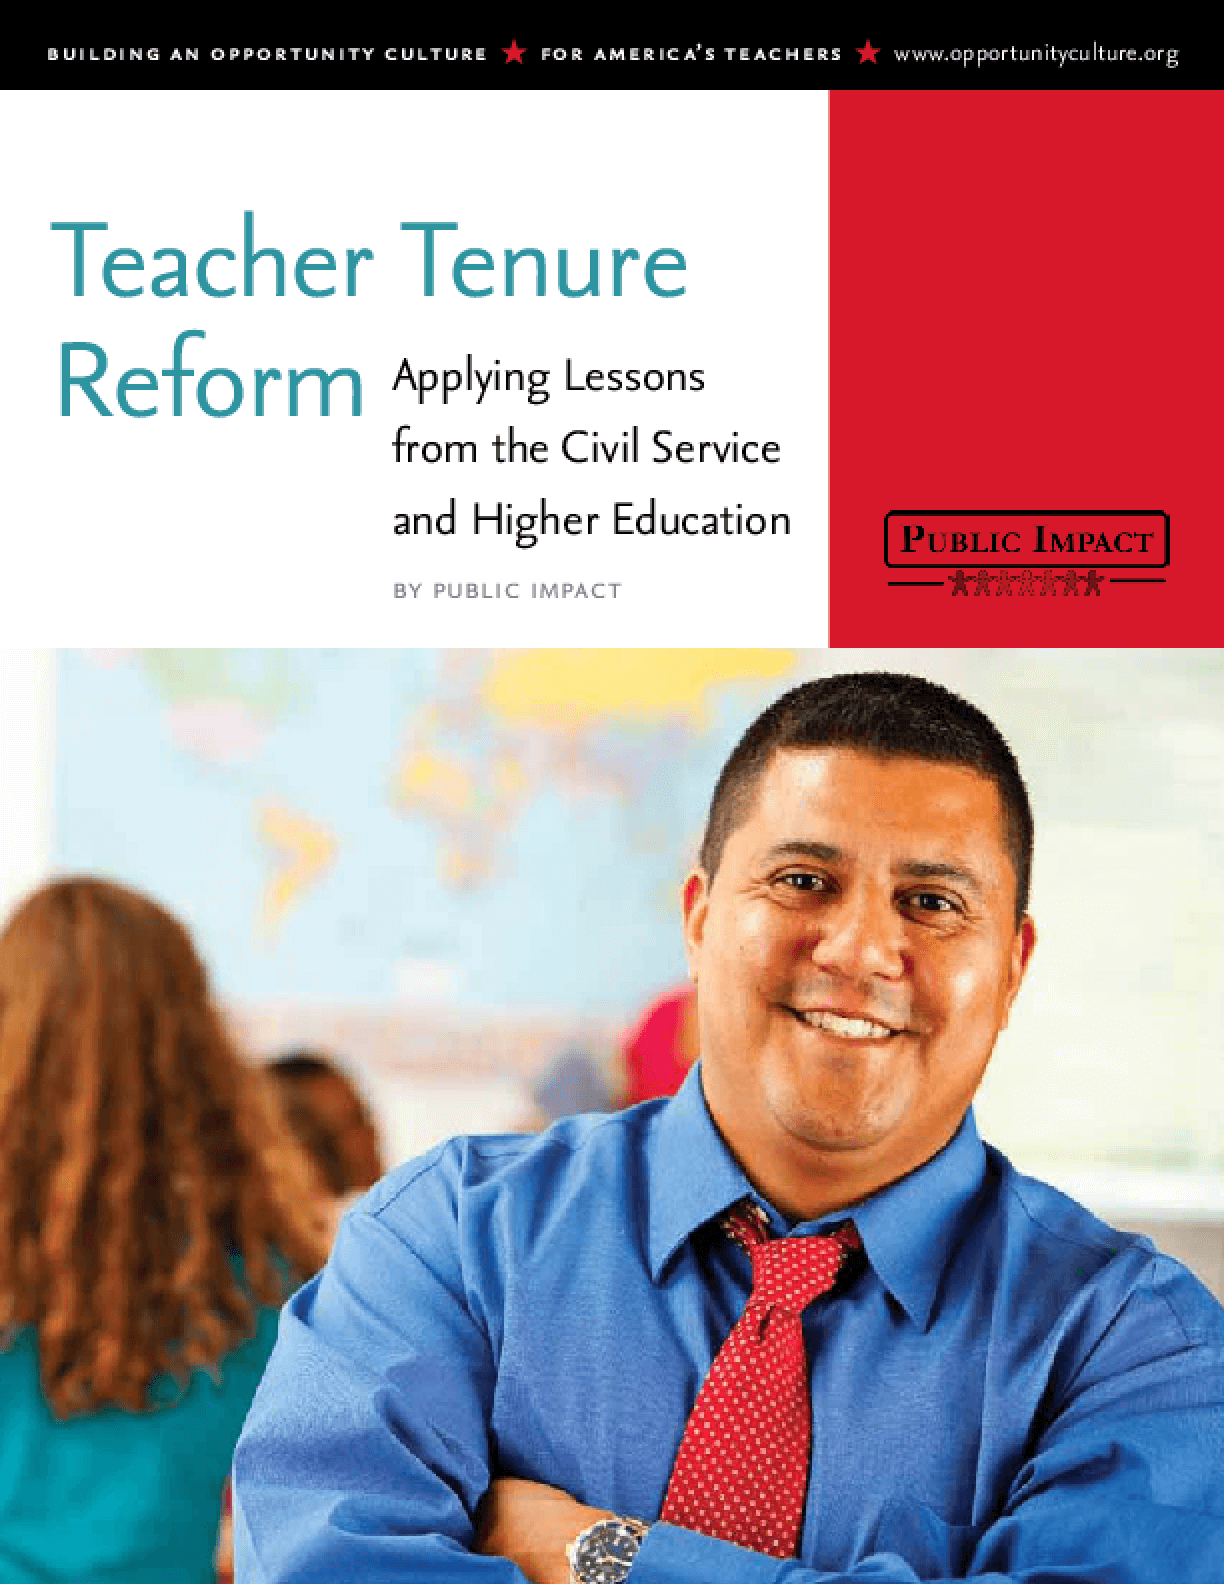 Teacher Tenure Reform: Applying Lessons From the Civil Service and Higher Education